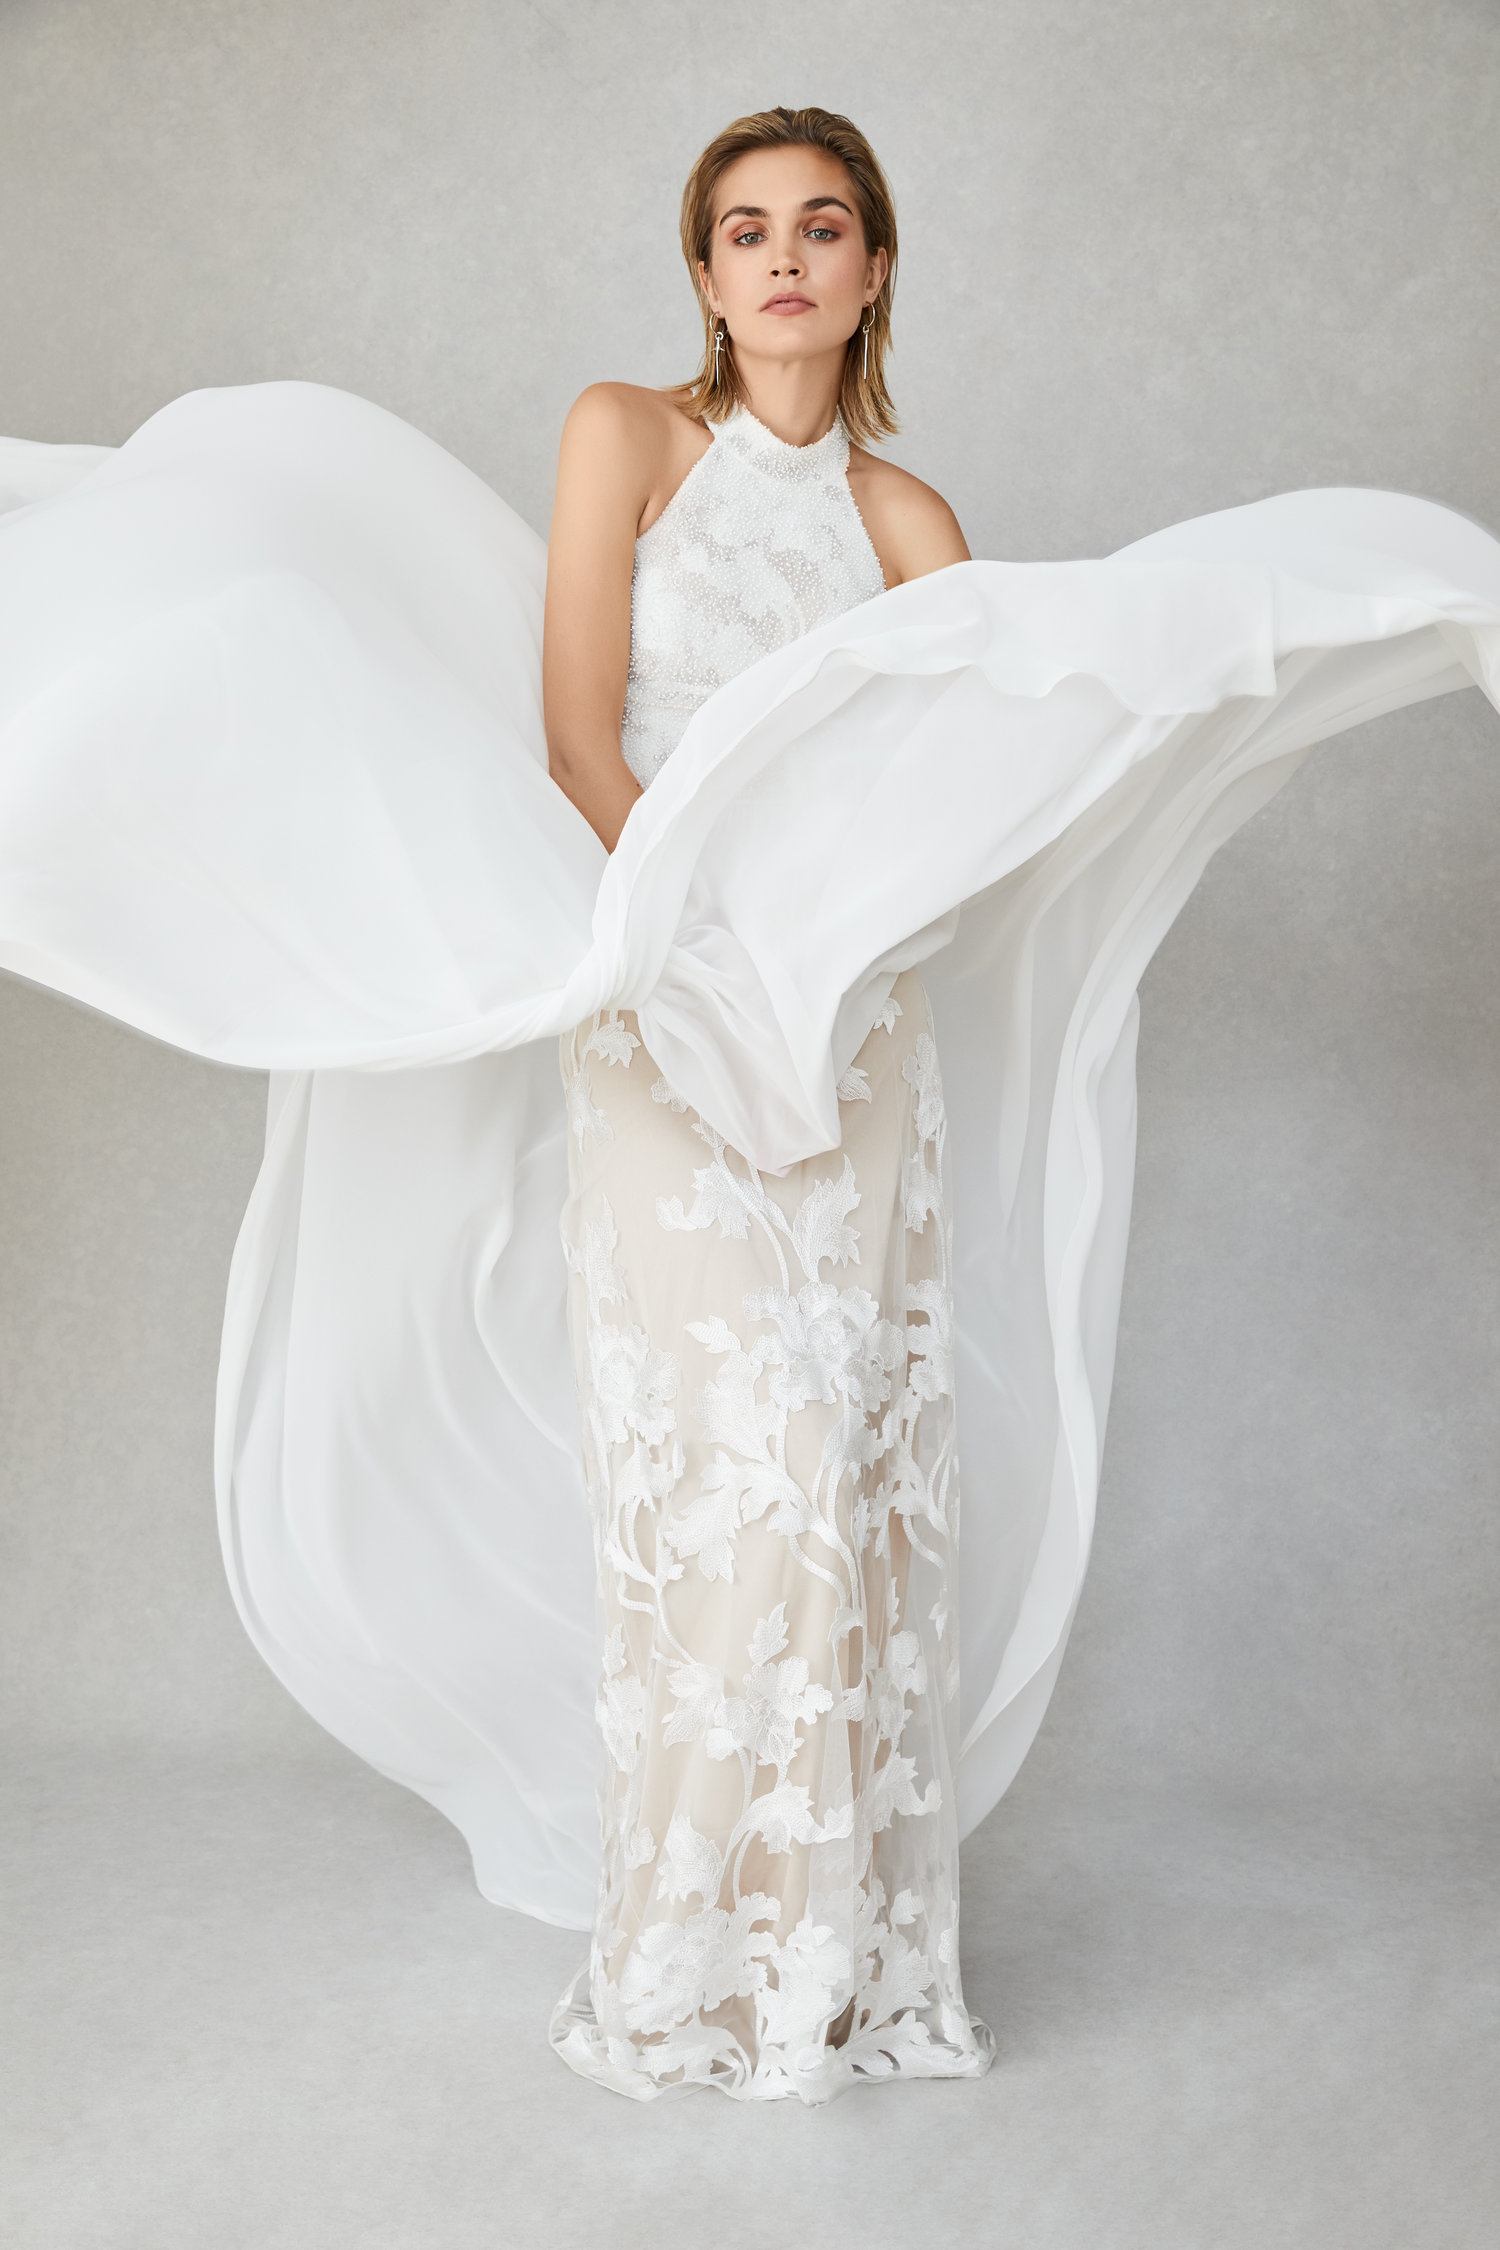 Sell Your Wedding Dress Our Story Bridal Our Story Bridal